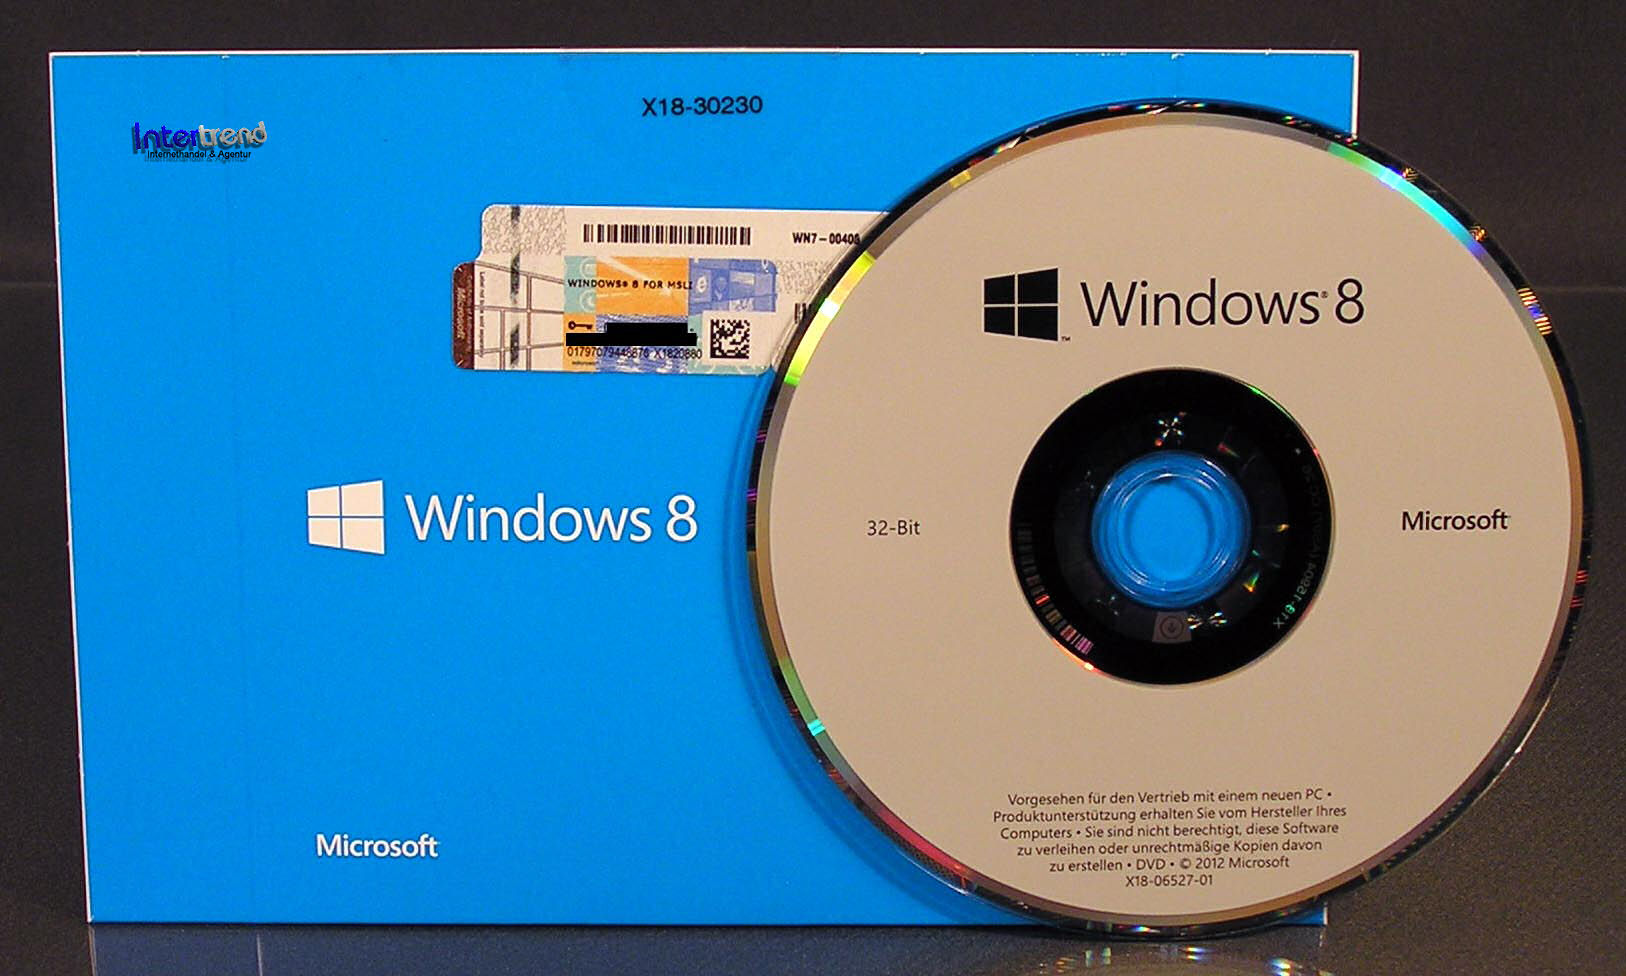 Details zu Microsoft Windows 8 Vollversion SB 32-Bit DE mit Hologramm